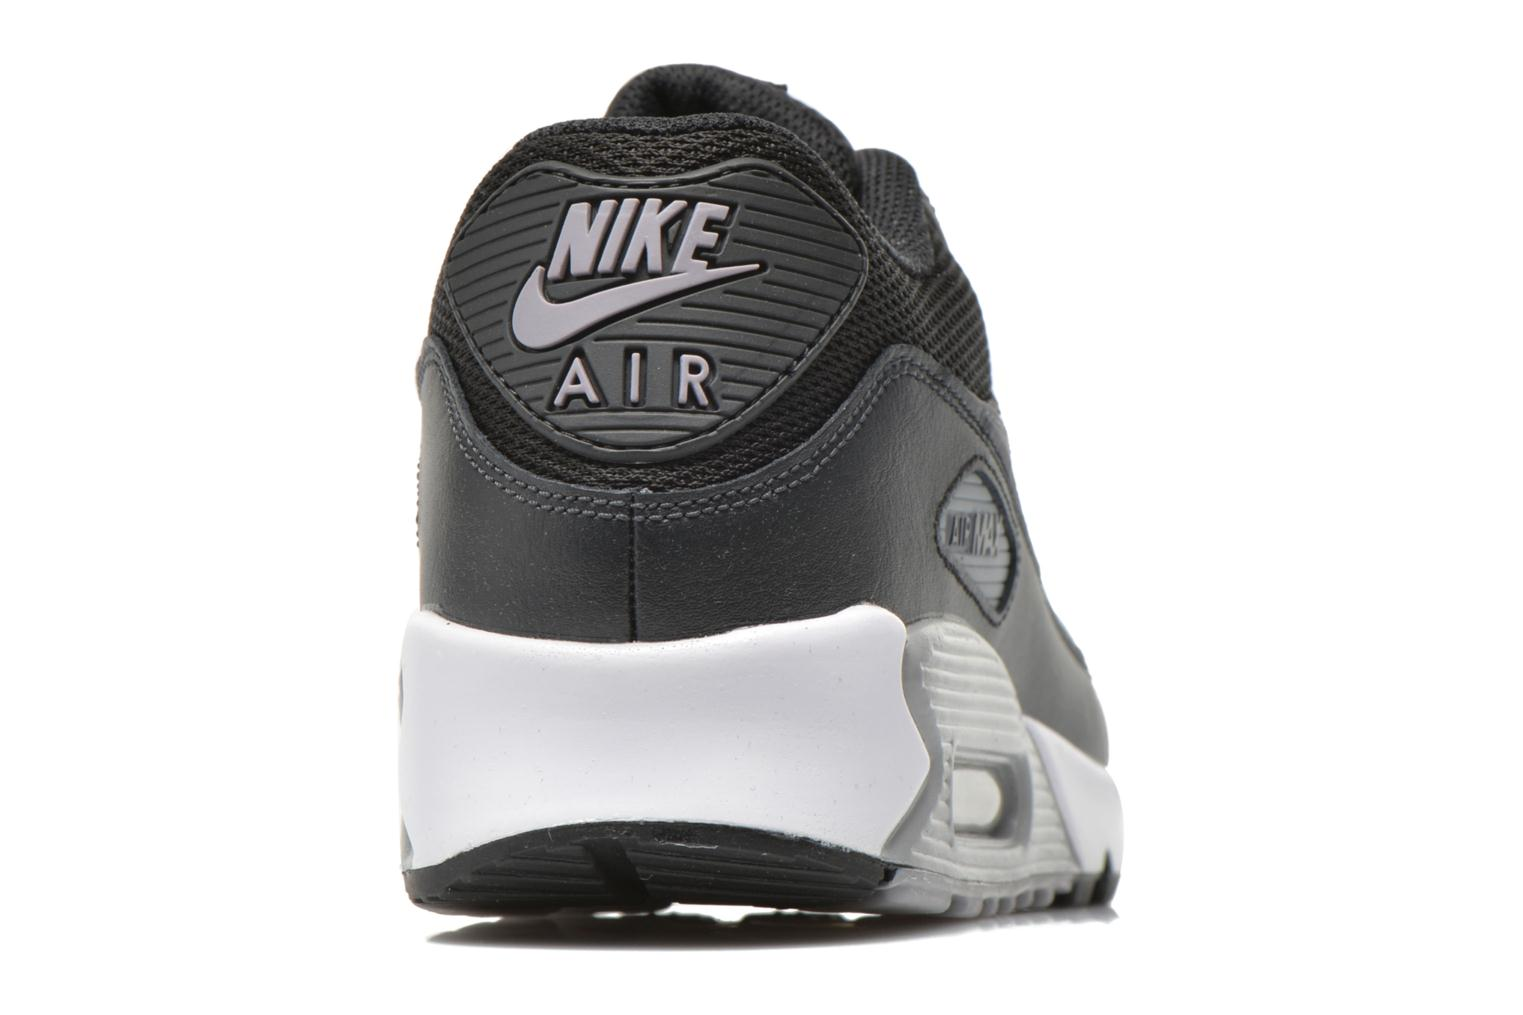 Nike Air Max 90 Essential Black/Wolf Grey-Anthracite-Wht